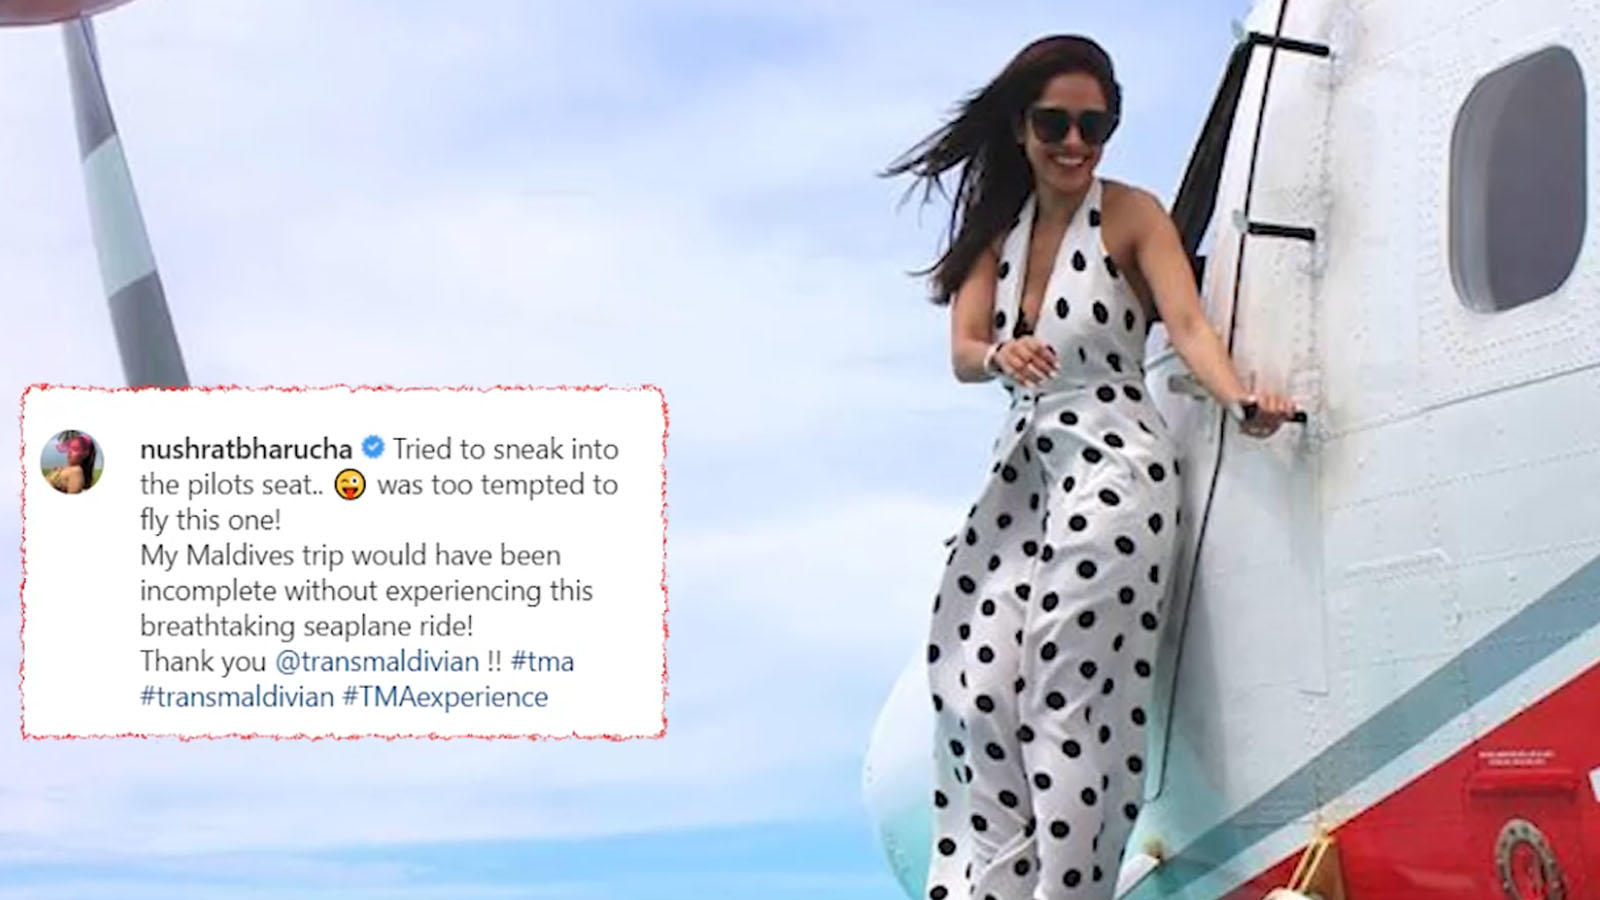 When Nushrat Bharucha was 'too tempted' to fly a seaplane on her own in Maldives